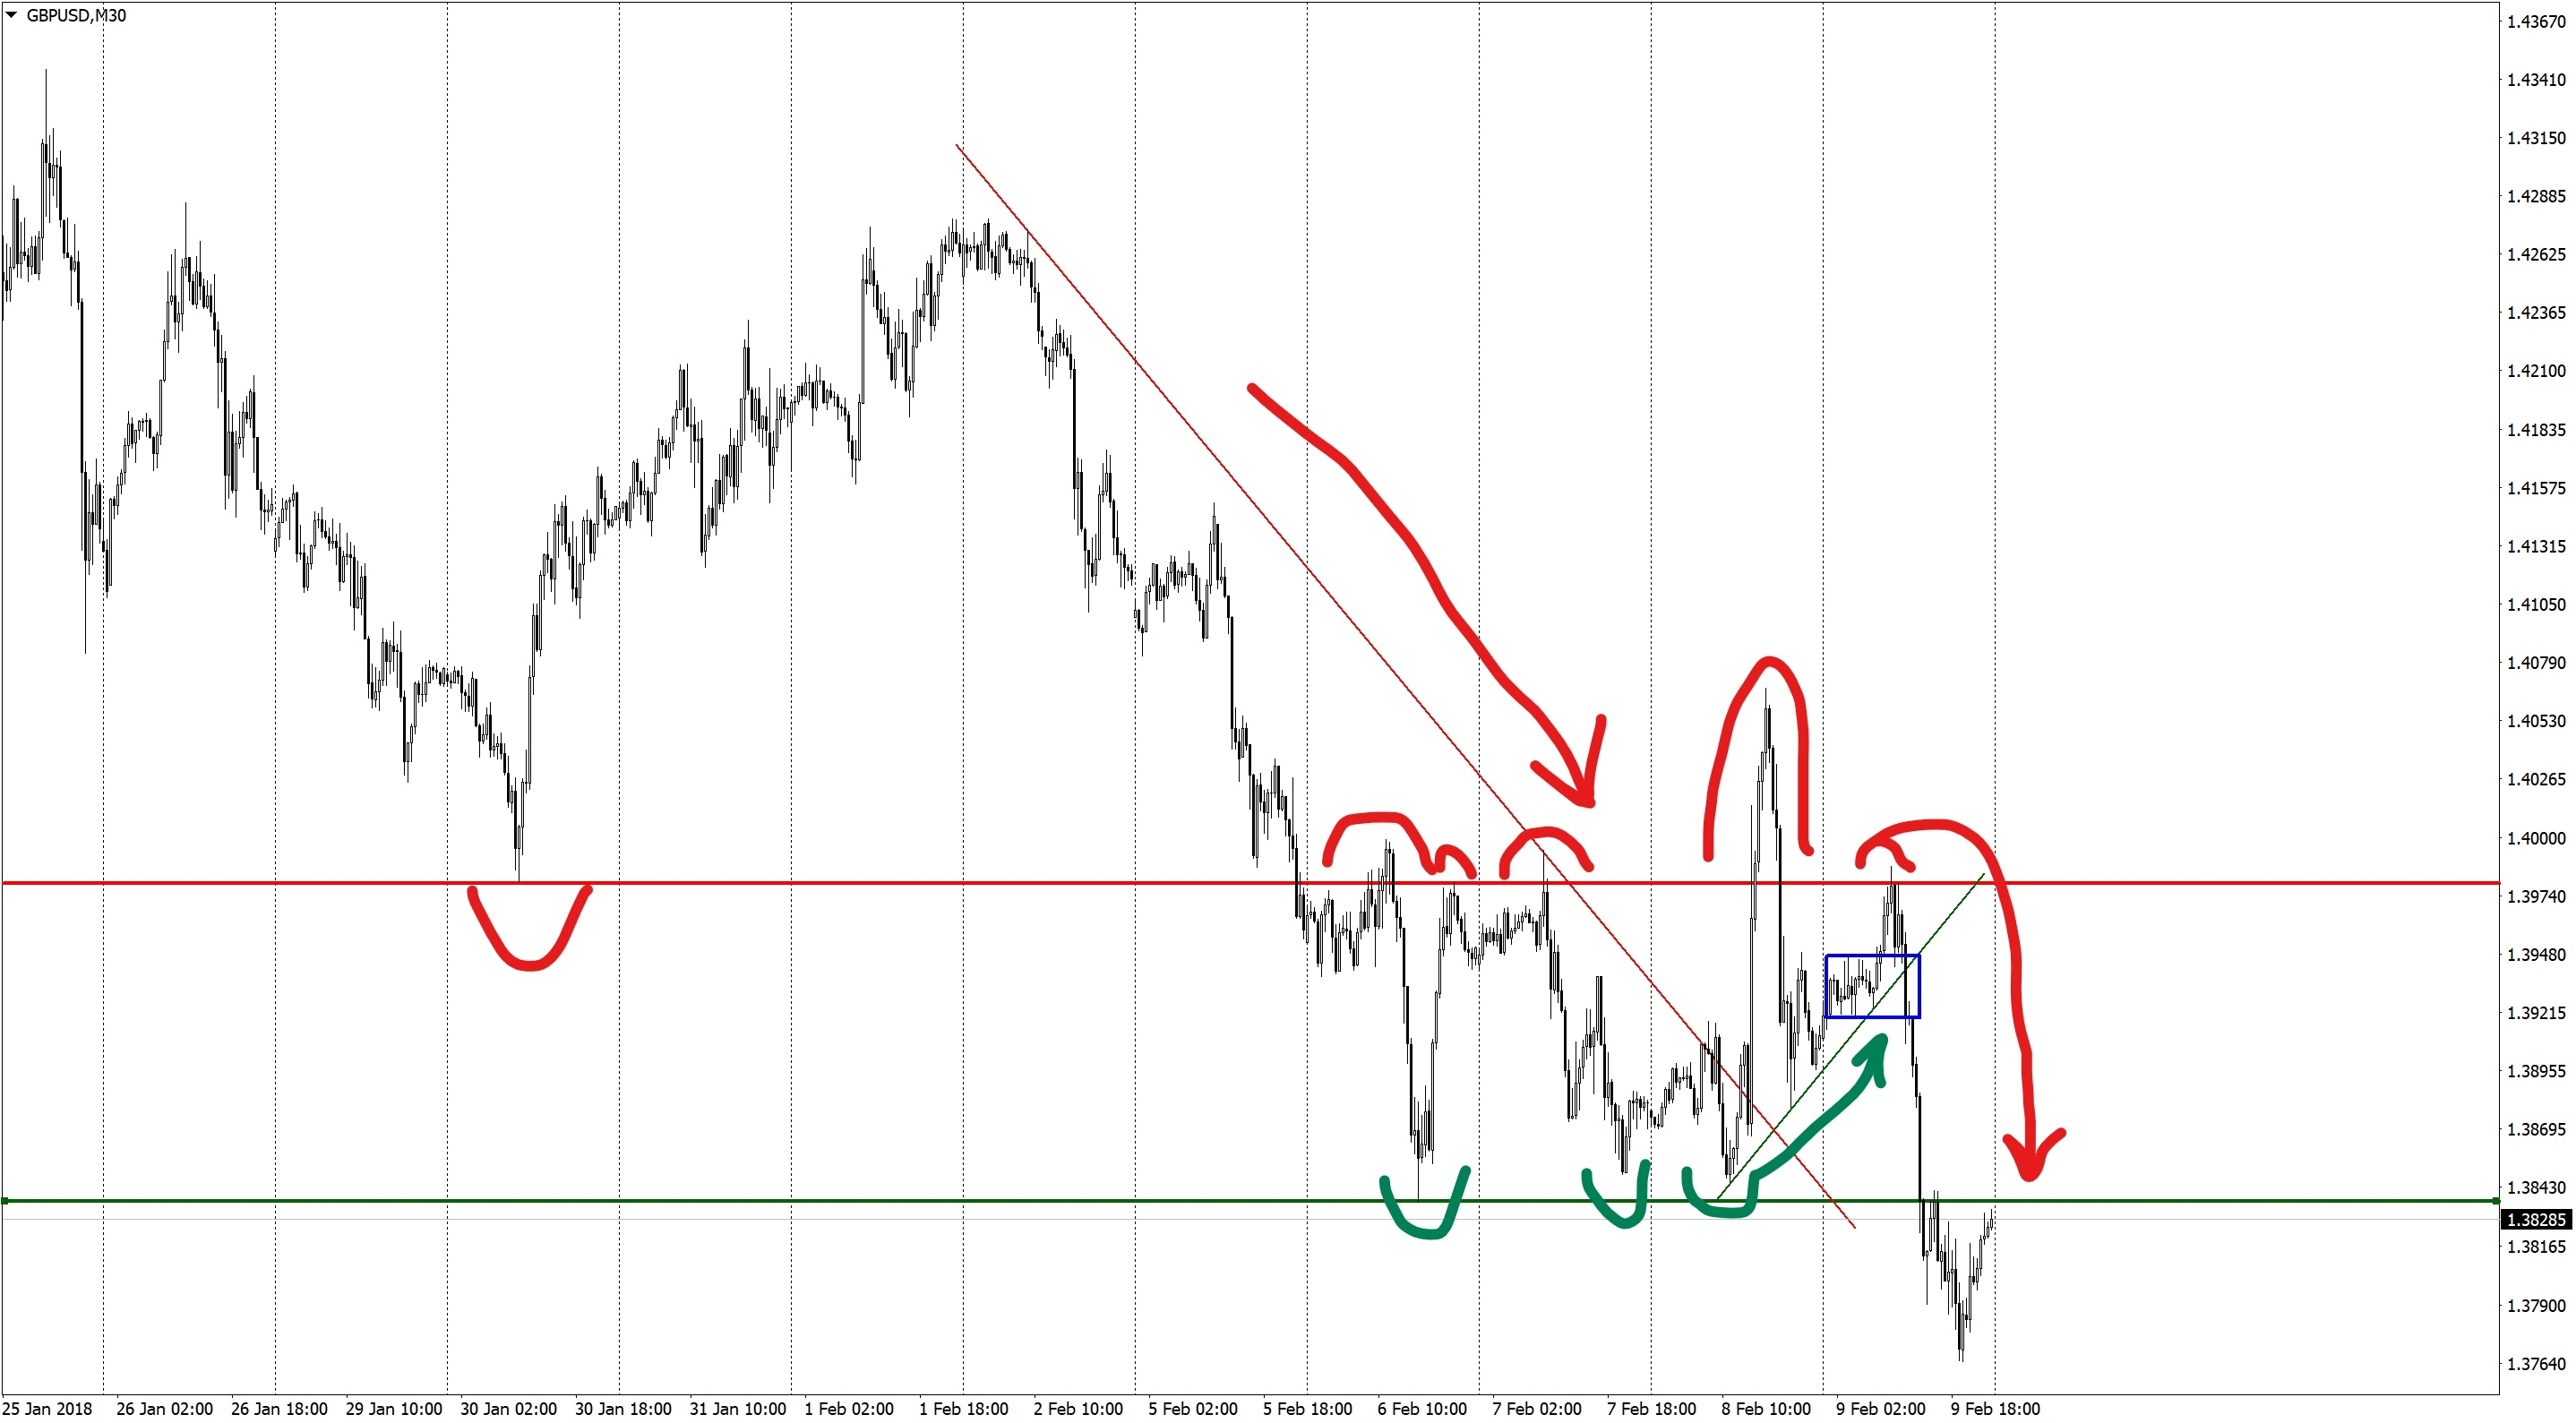 The market's line model on GBPUSD M30